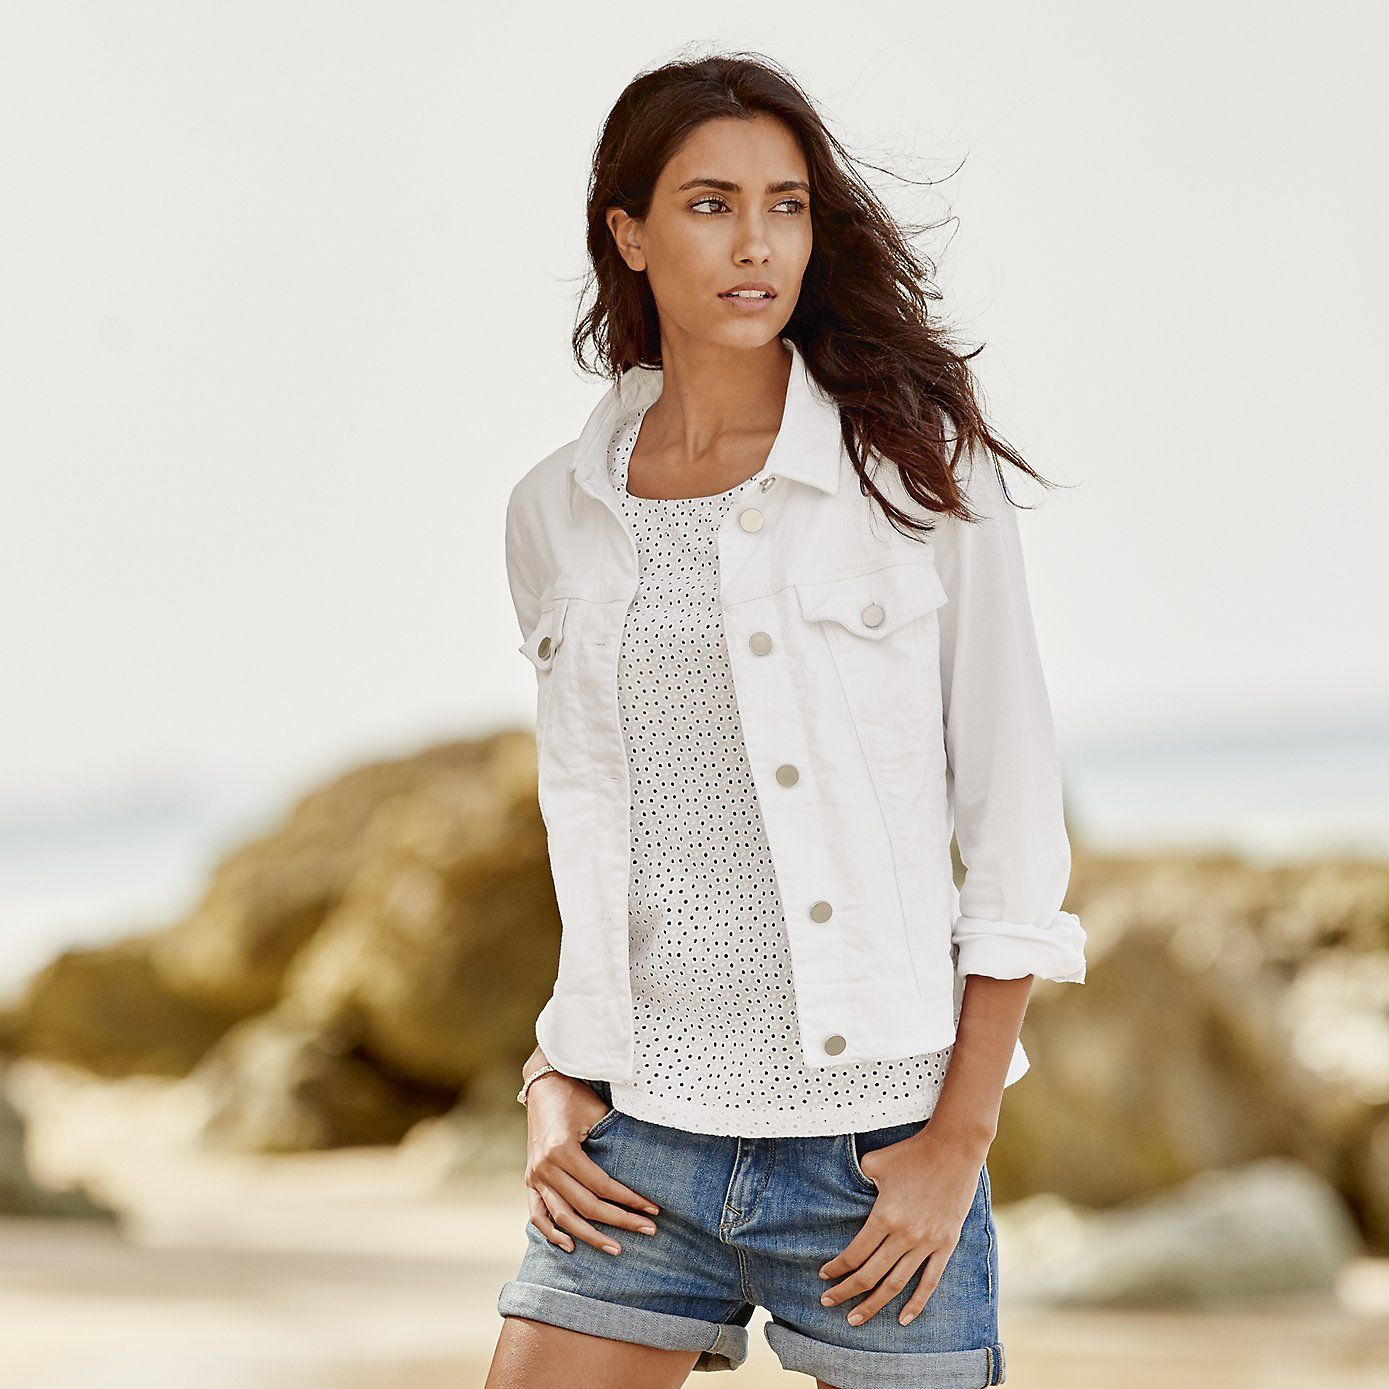 Brompton Denim Jacket - White from The White Company ... b5a0afdc4